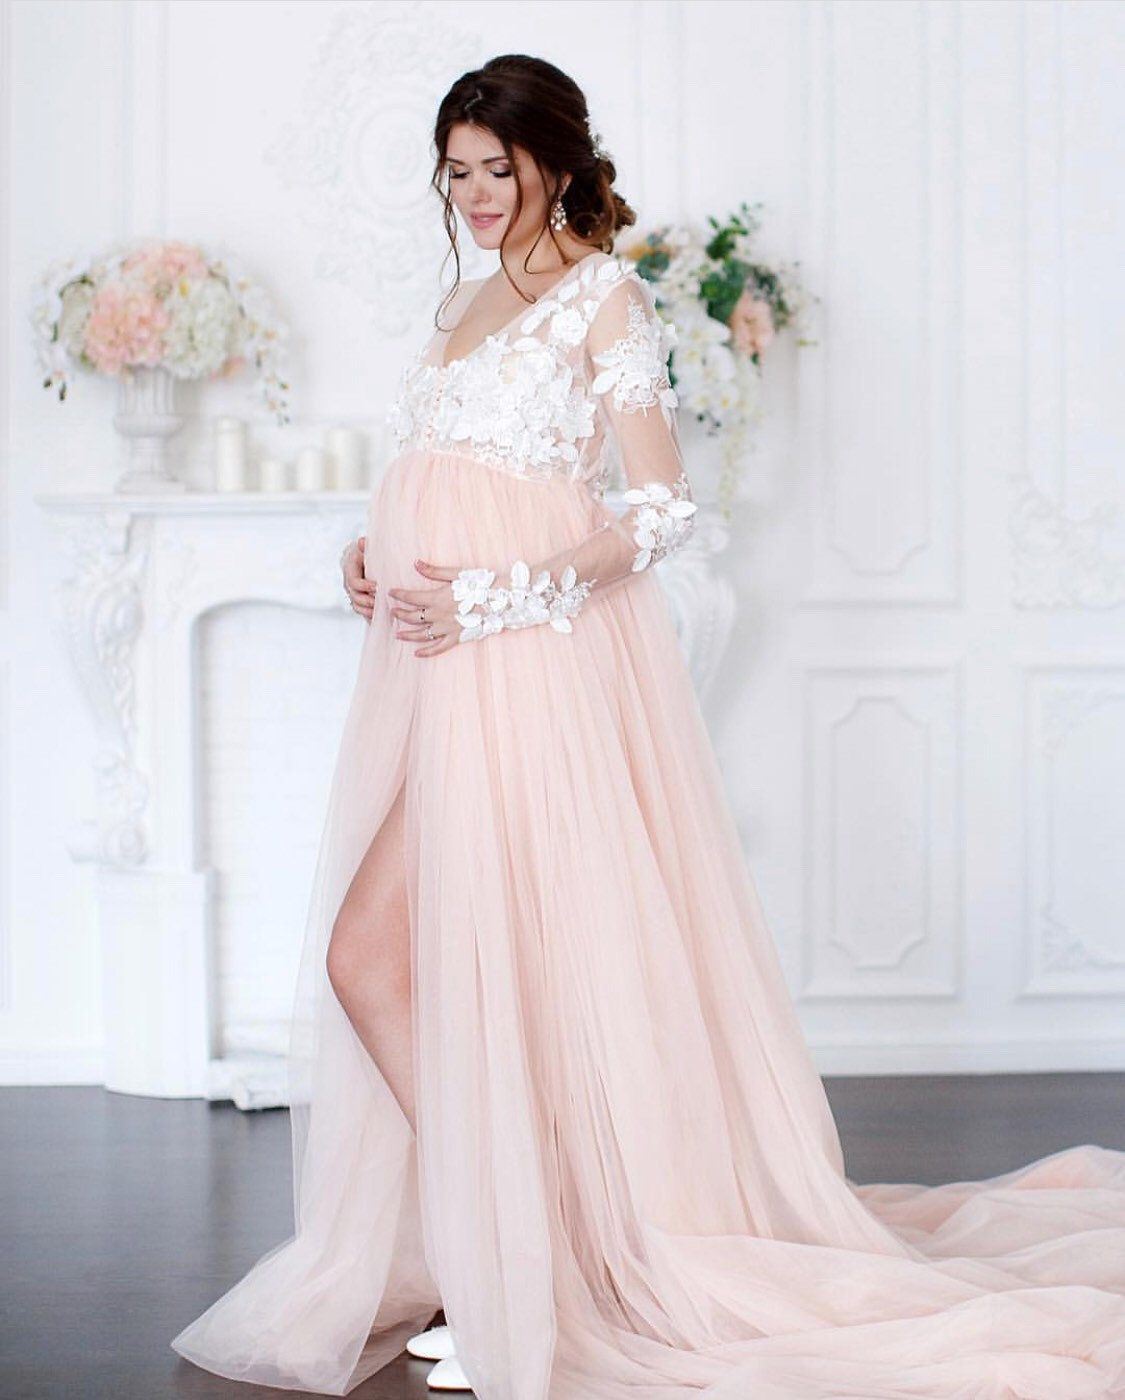 4d6bfbad42138 White Lace Maternity Dress for photo shoot Maternity Gown Pregnancy dress  Plus Size Maternity Peachy Dress Maternity Outfit